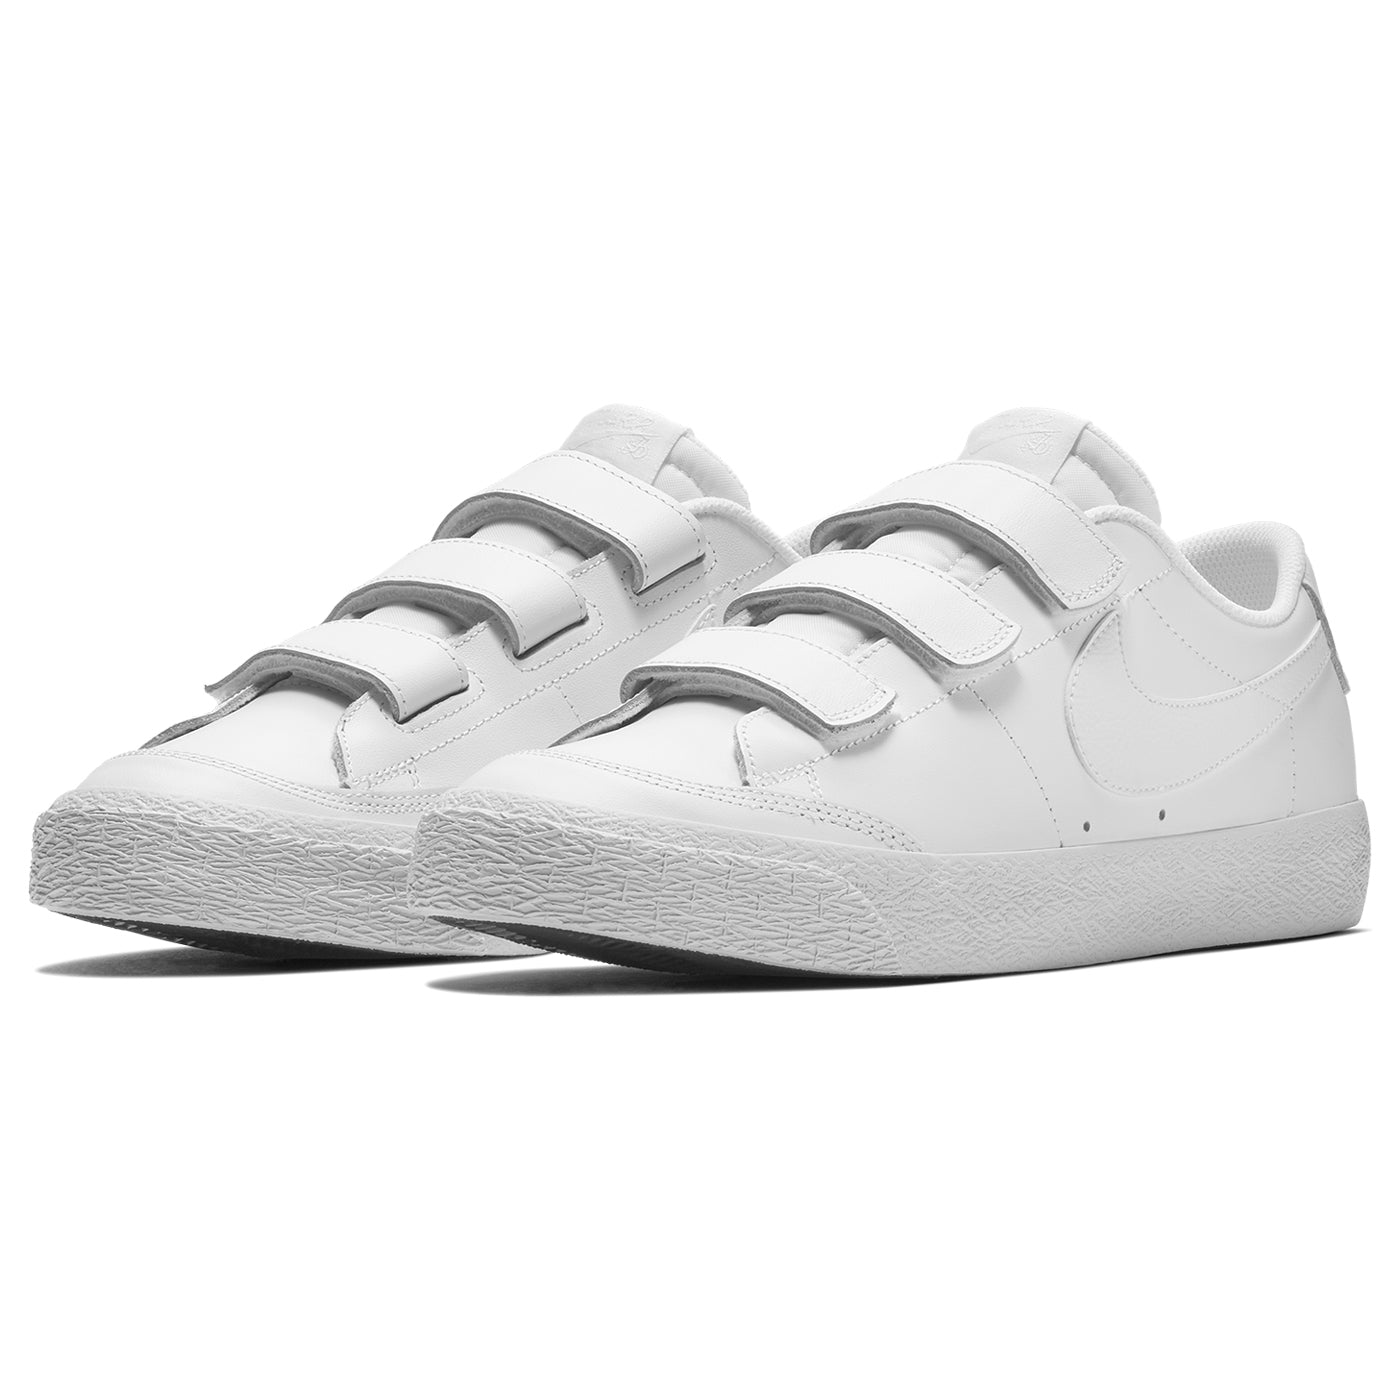 352f9ac9d06 Zoom Blazer AC XT in White   White - Black by Nike SB